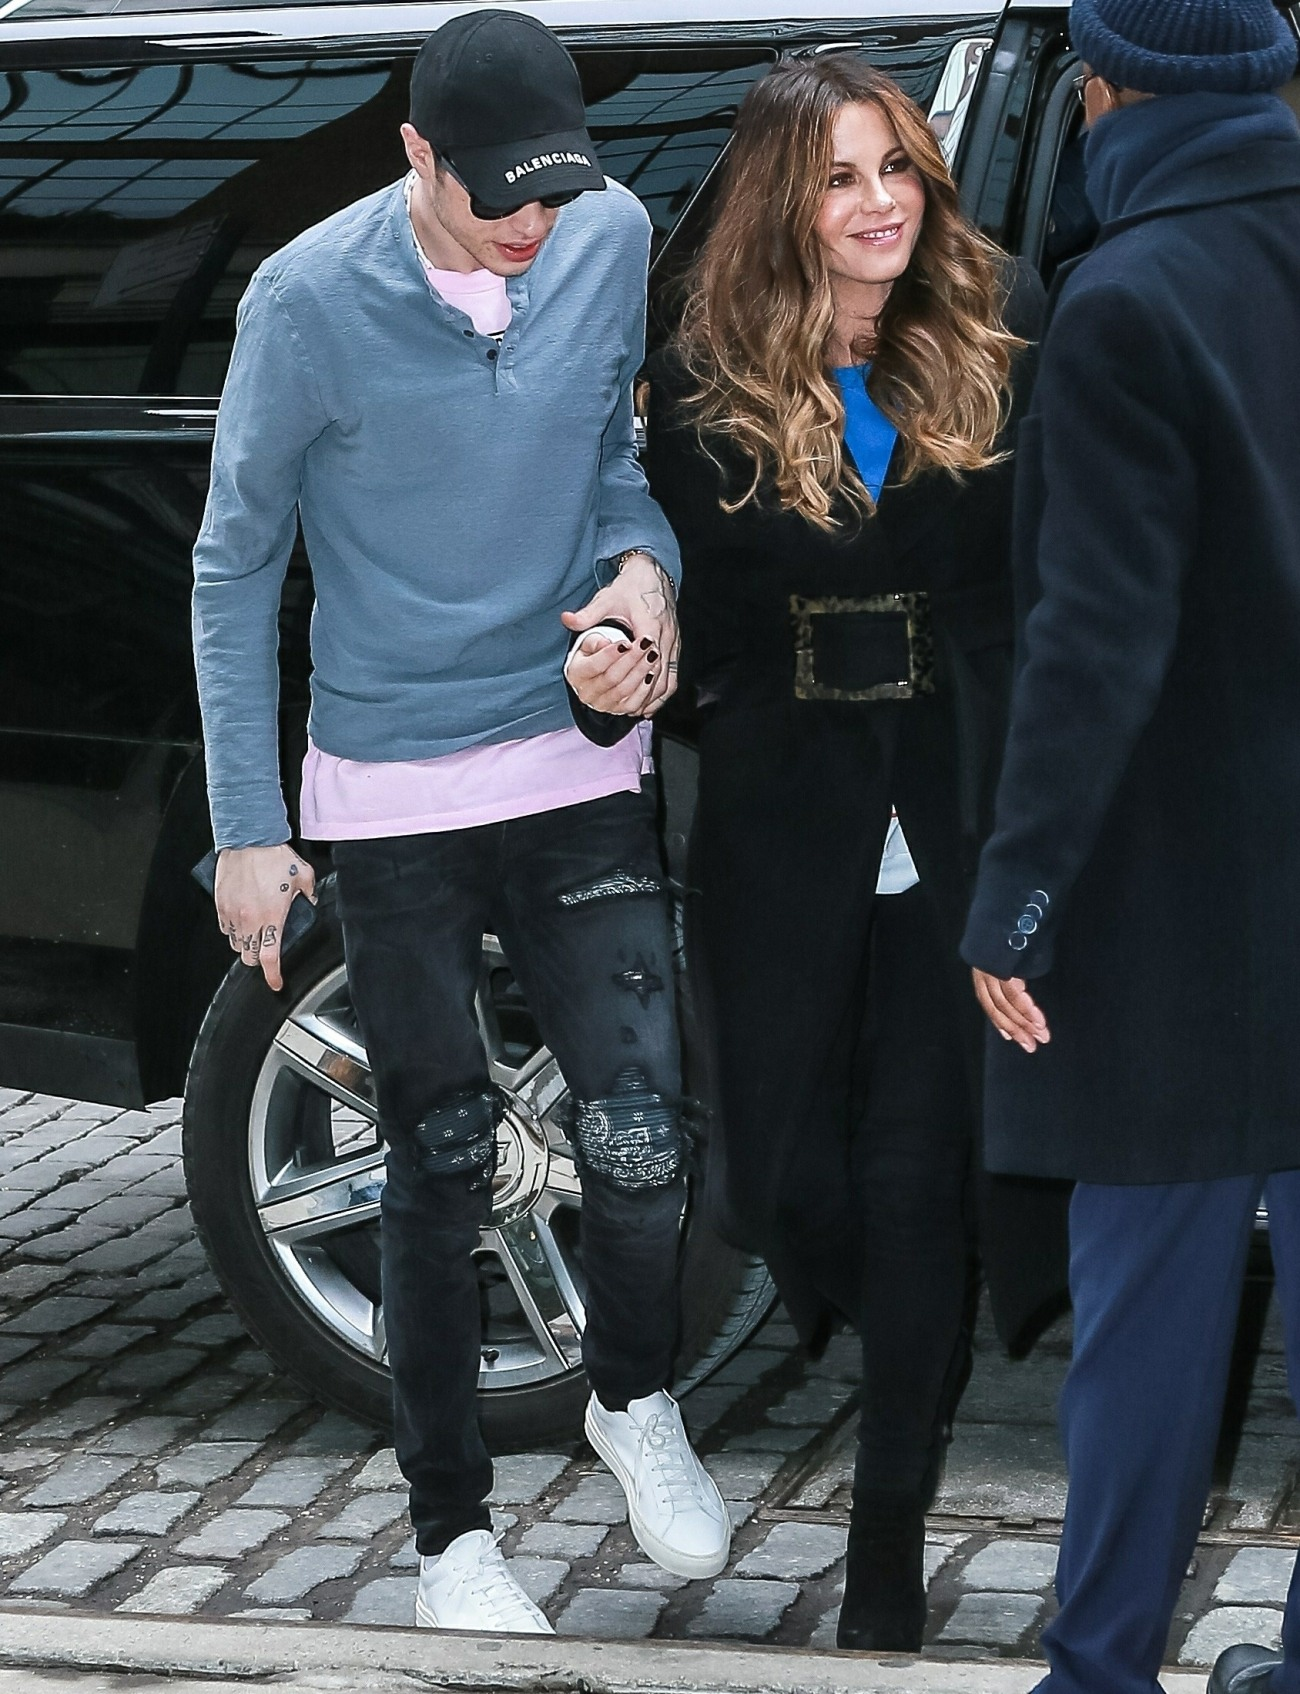 Pete Davidson holds hands while out with girlfriend Kate Beckinsale